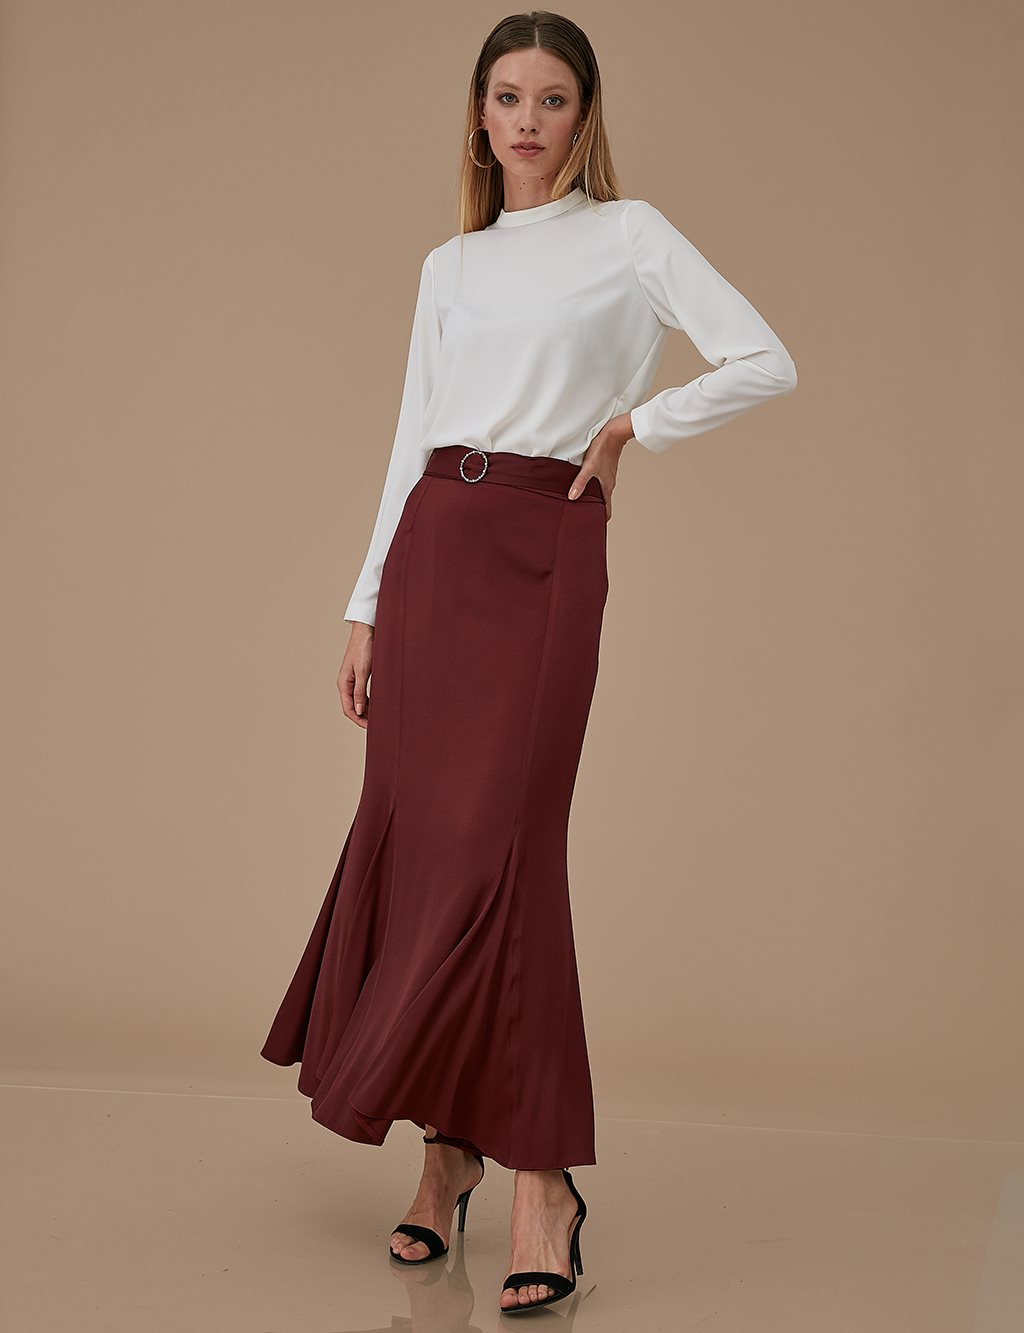 Sateen Skirt A9 12042 Burgundy